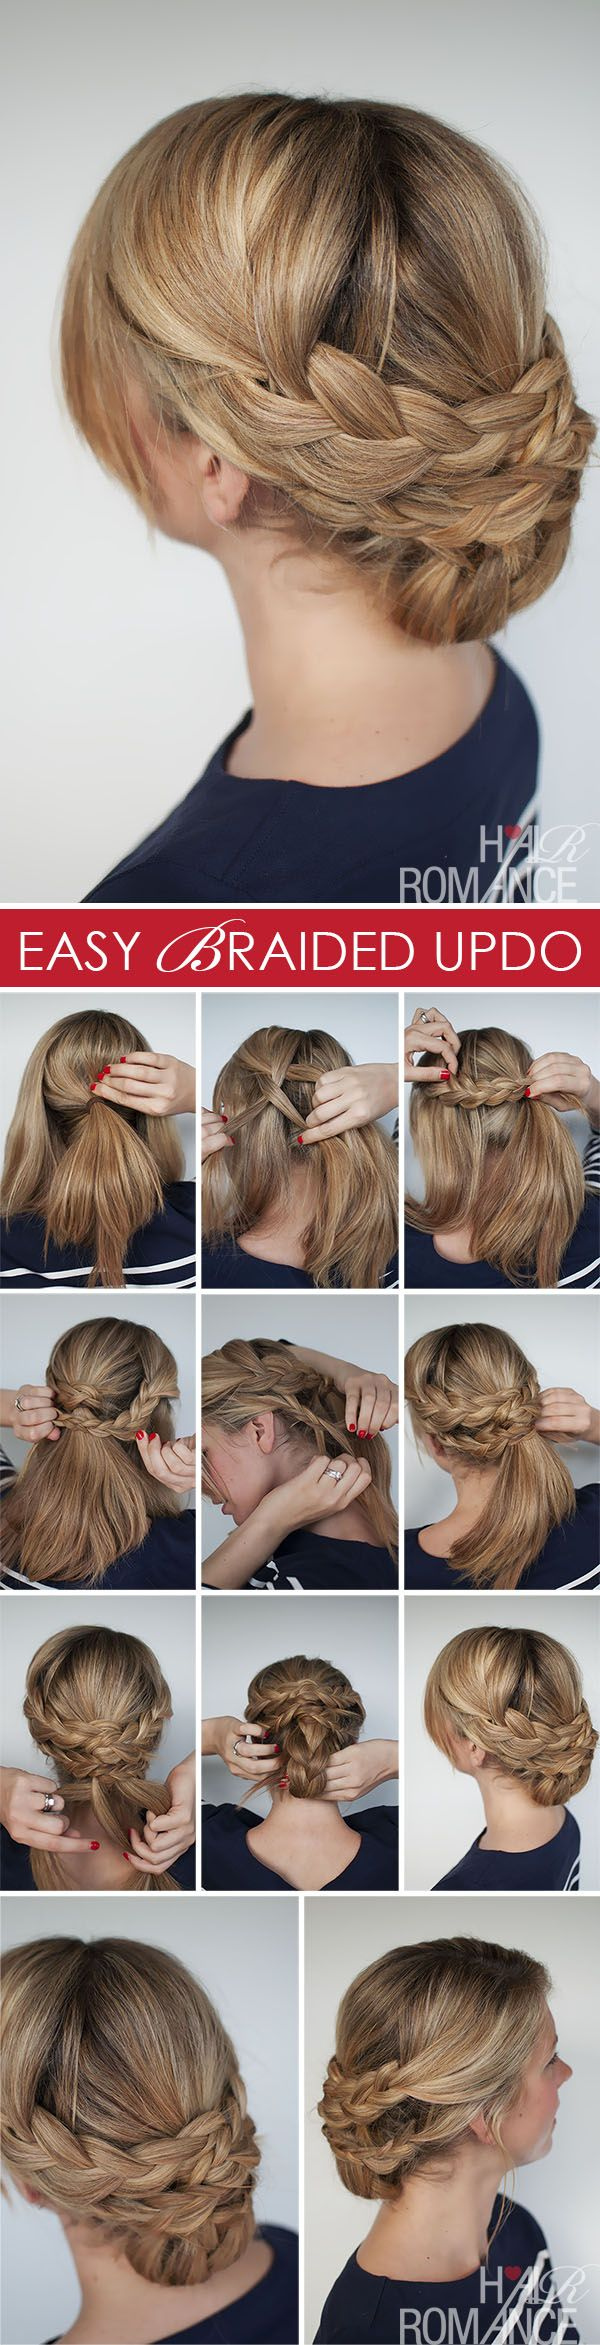 Easy braided upstyle tutorial